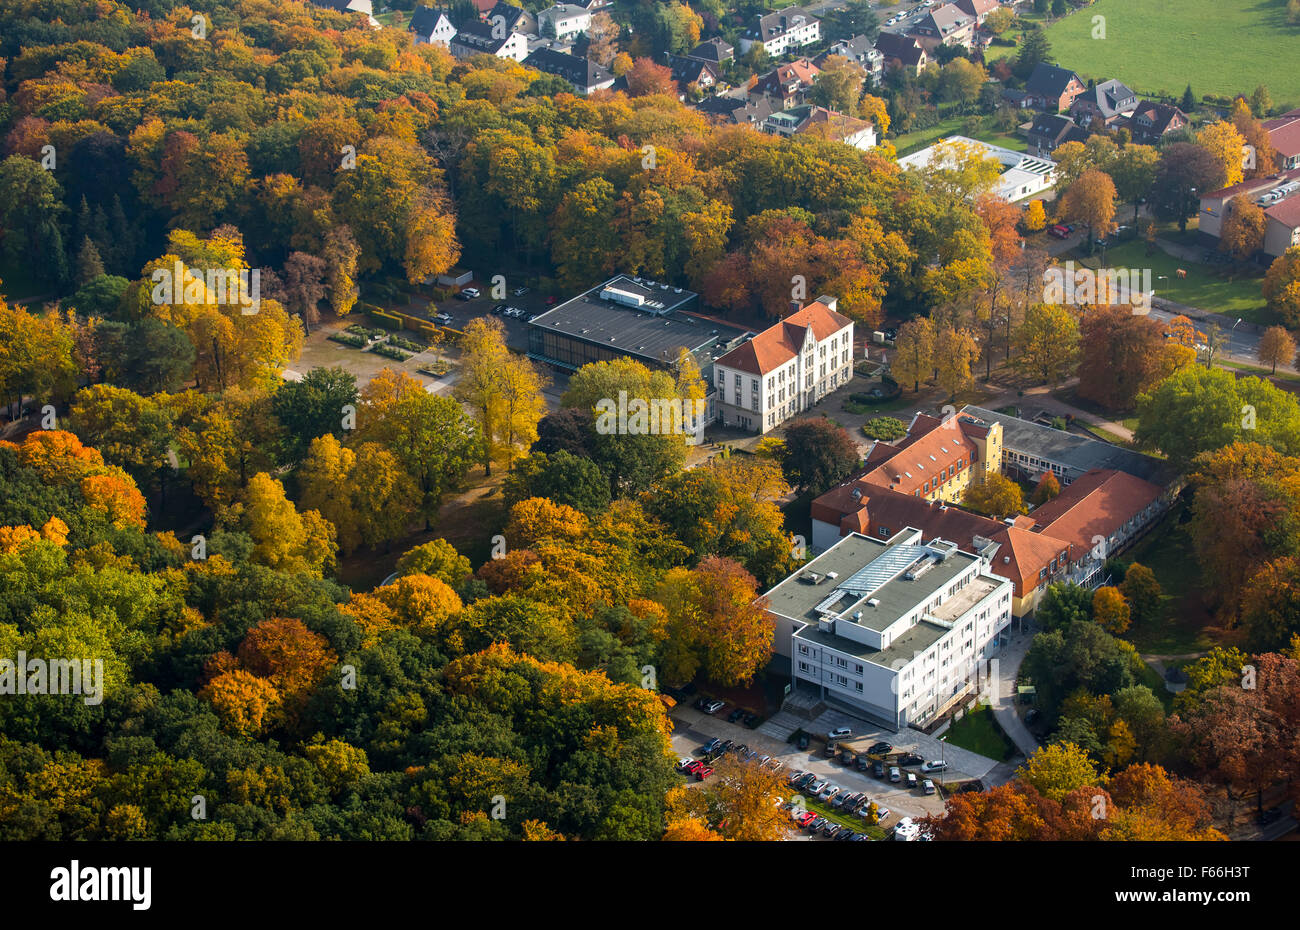 Clinic for Manual Therapy and Kurhaus Bad Hamm in autumn forest at Kurpark Hamm, Hamm Ruhr Nordrhein-Westfalen Germany - Stock Image